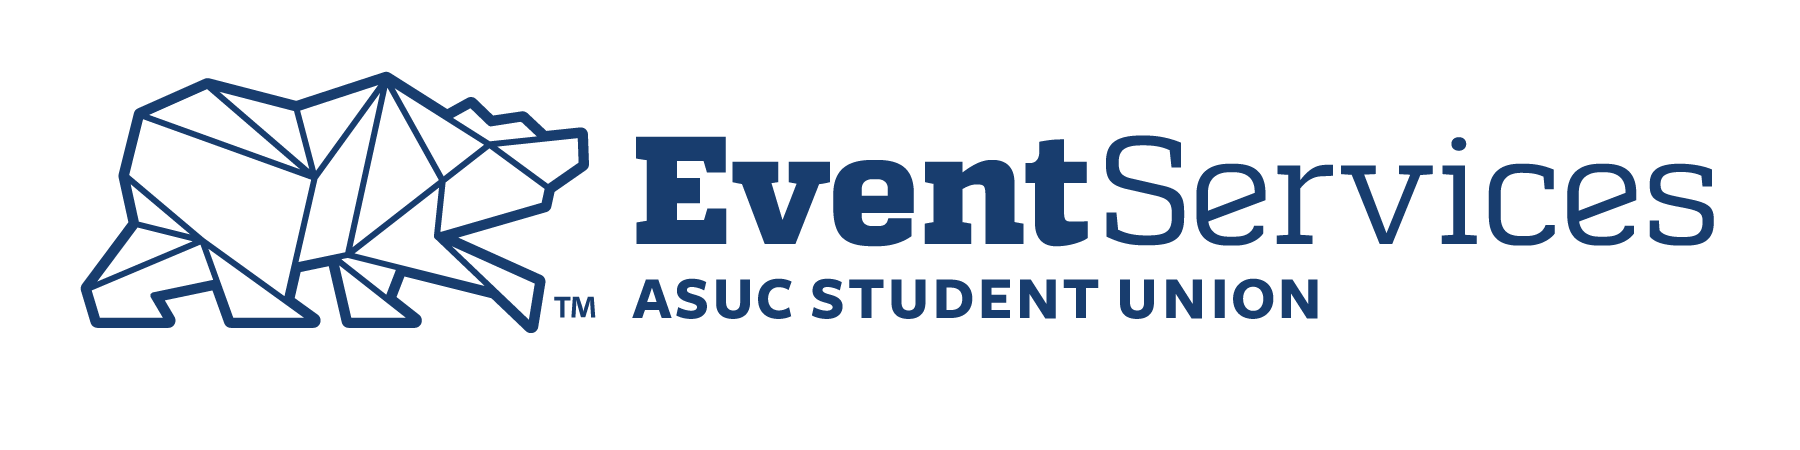 Download event services logo Horizontal in Berkeley Blue